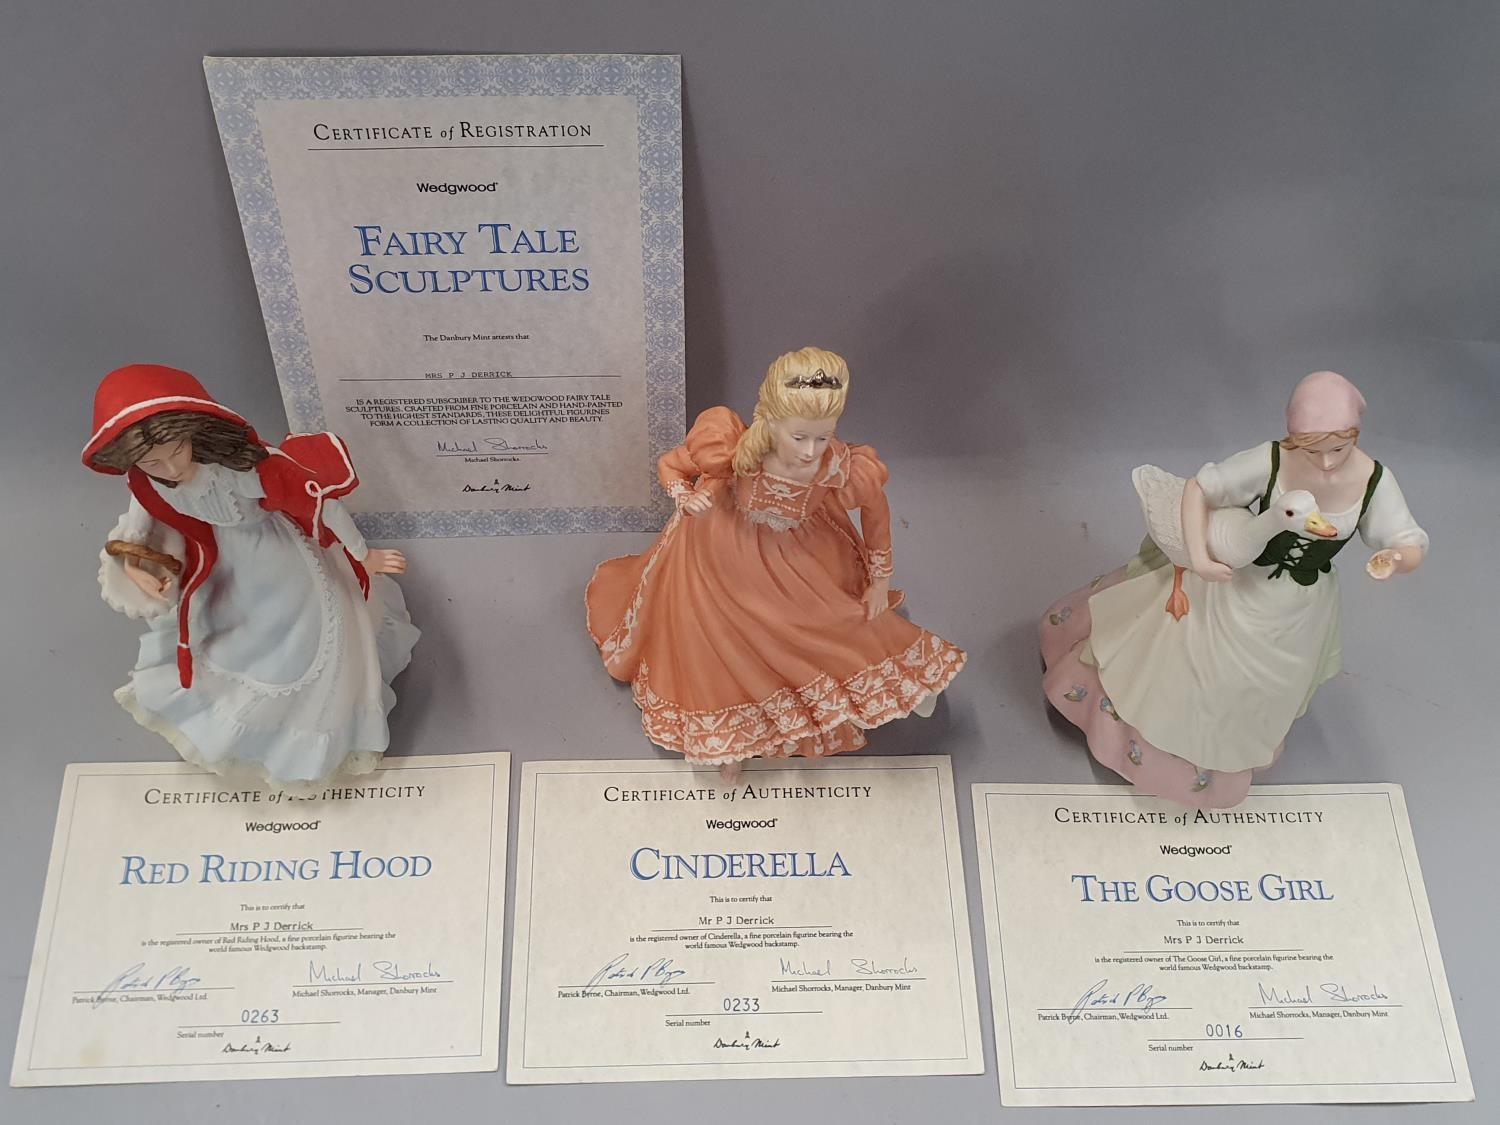 Wedgwood fairy tale figurines x 3 with certificates. - Image 4 of 4